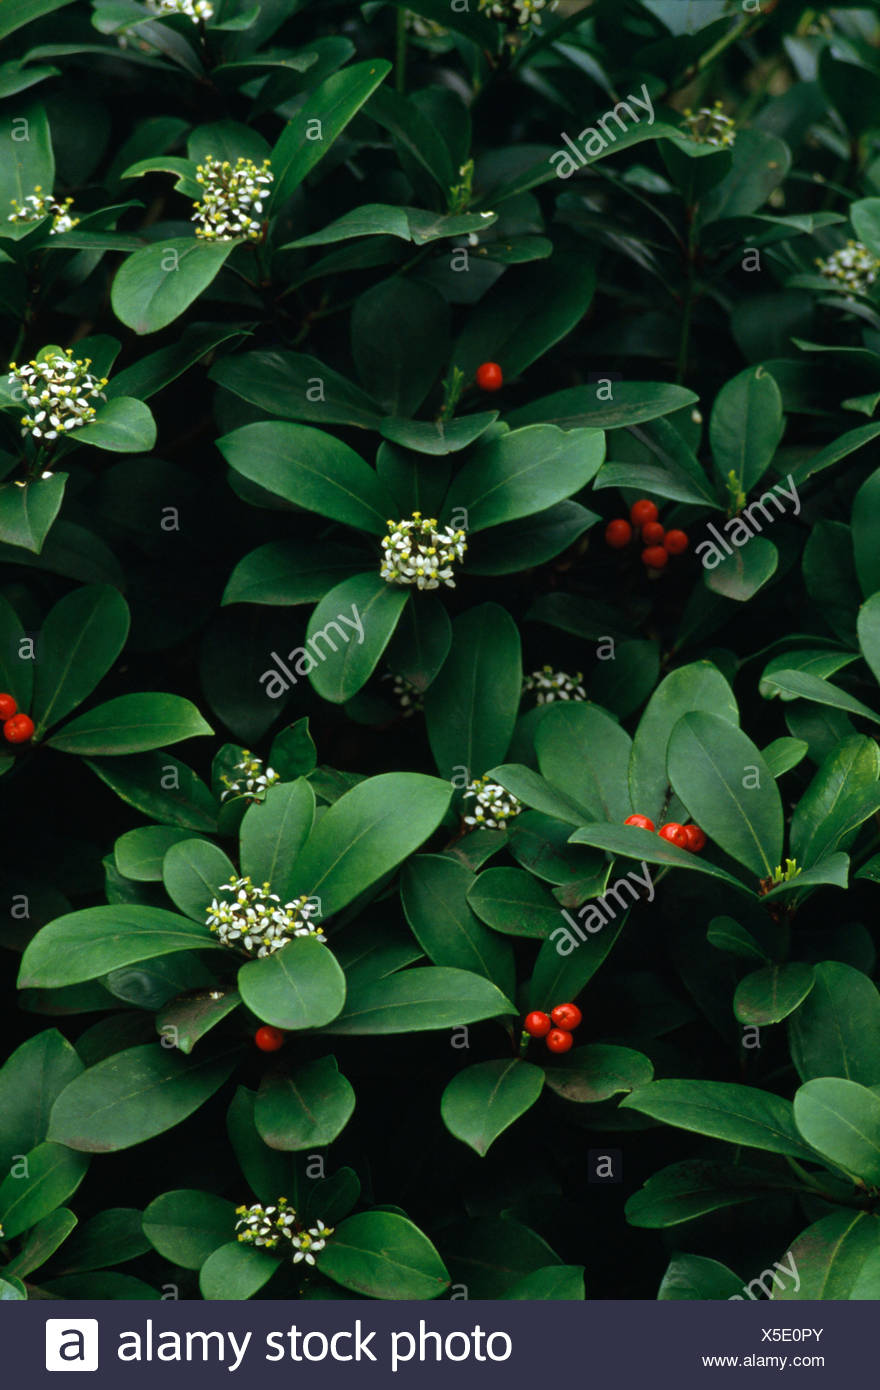 Close Up Of A Skimmia Japonica With Red Berries And White Flowers